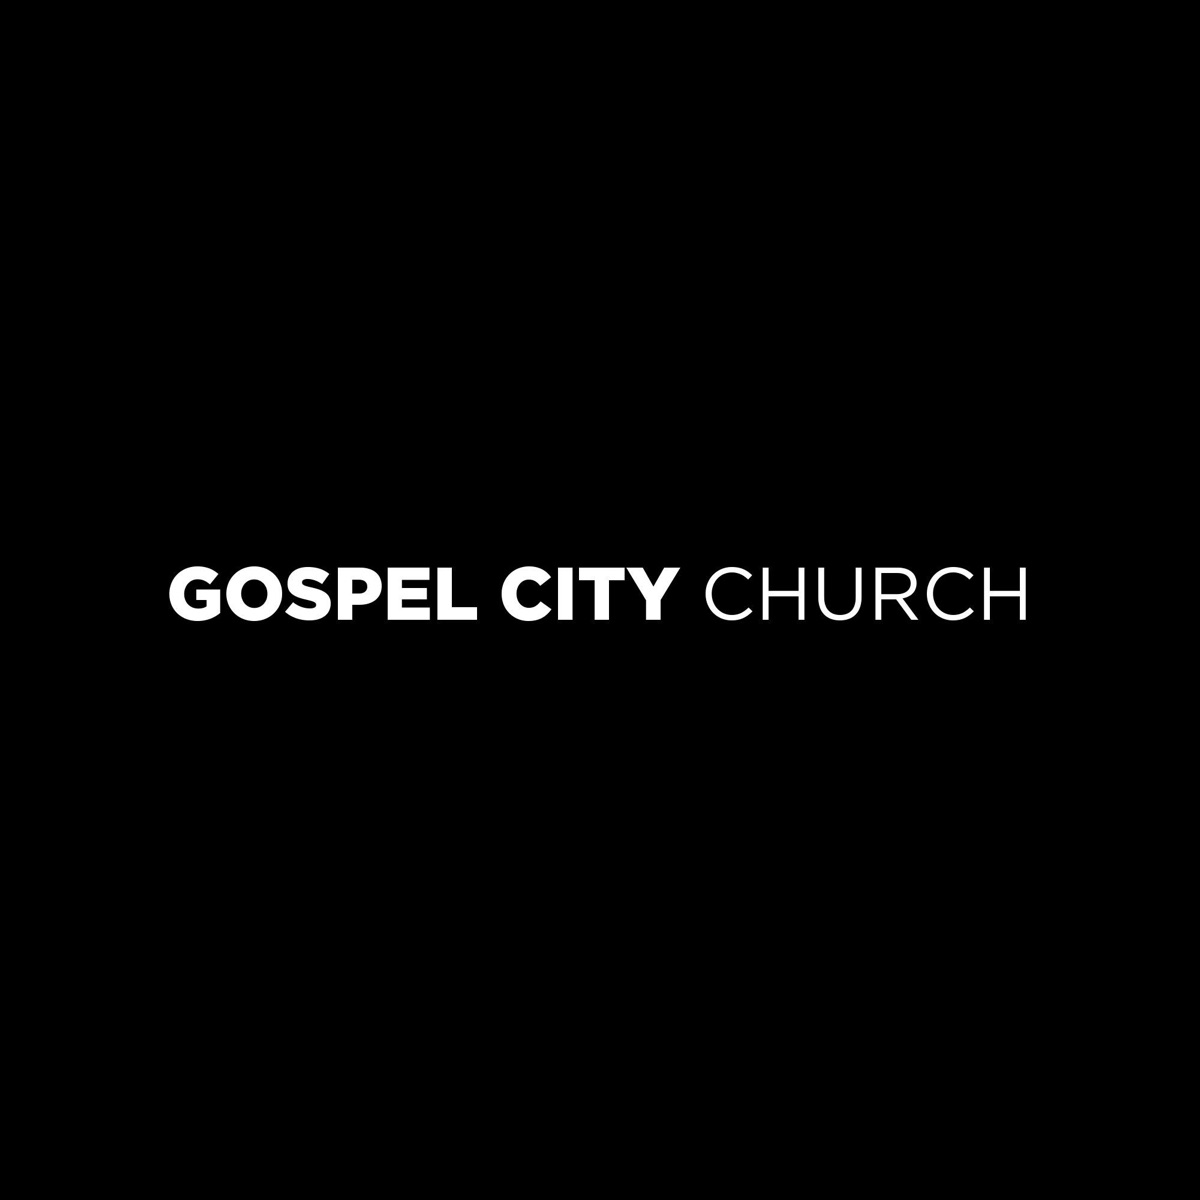 Gospel City Church